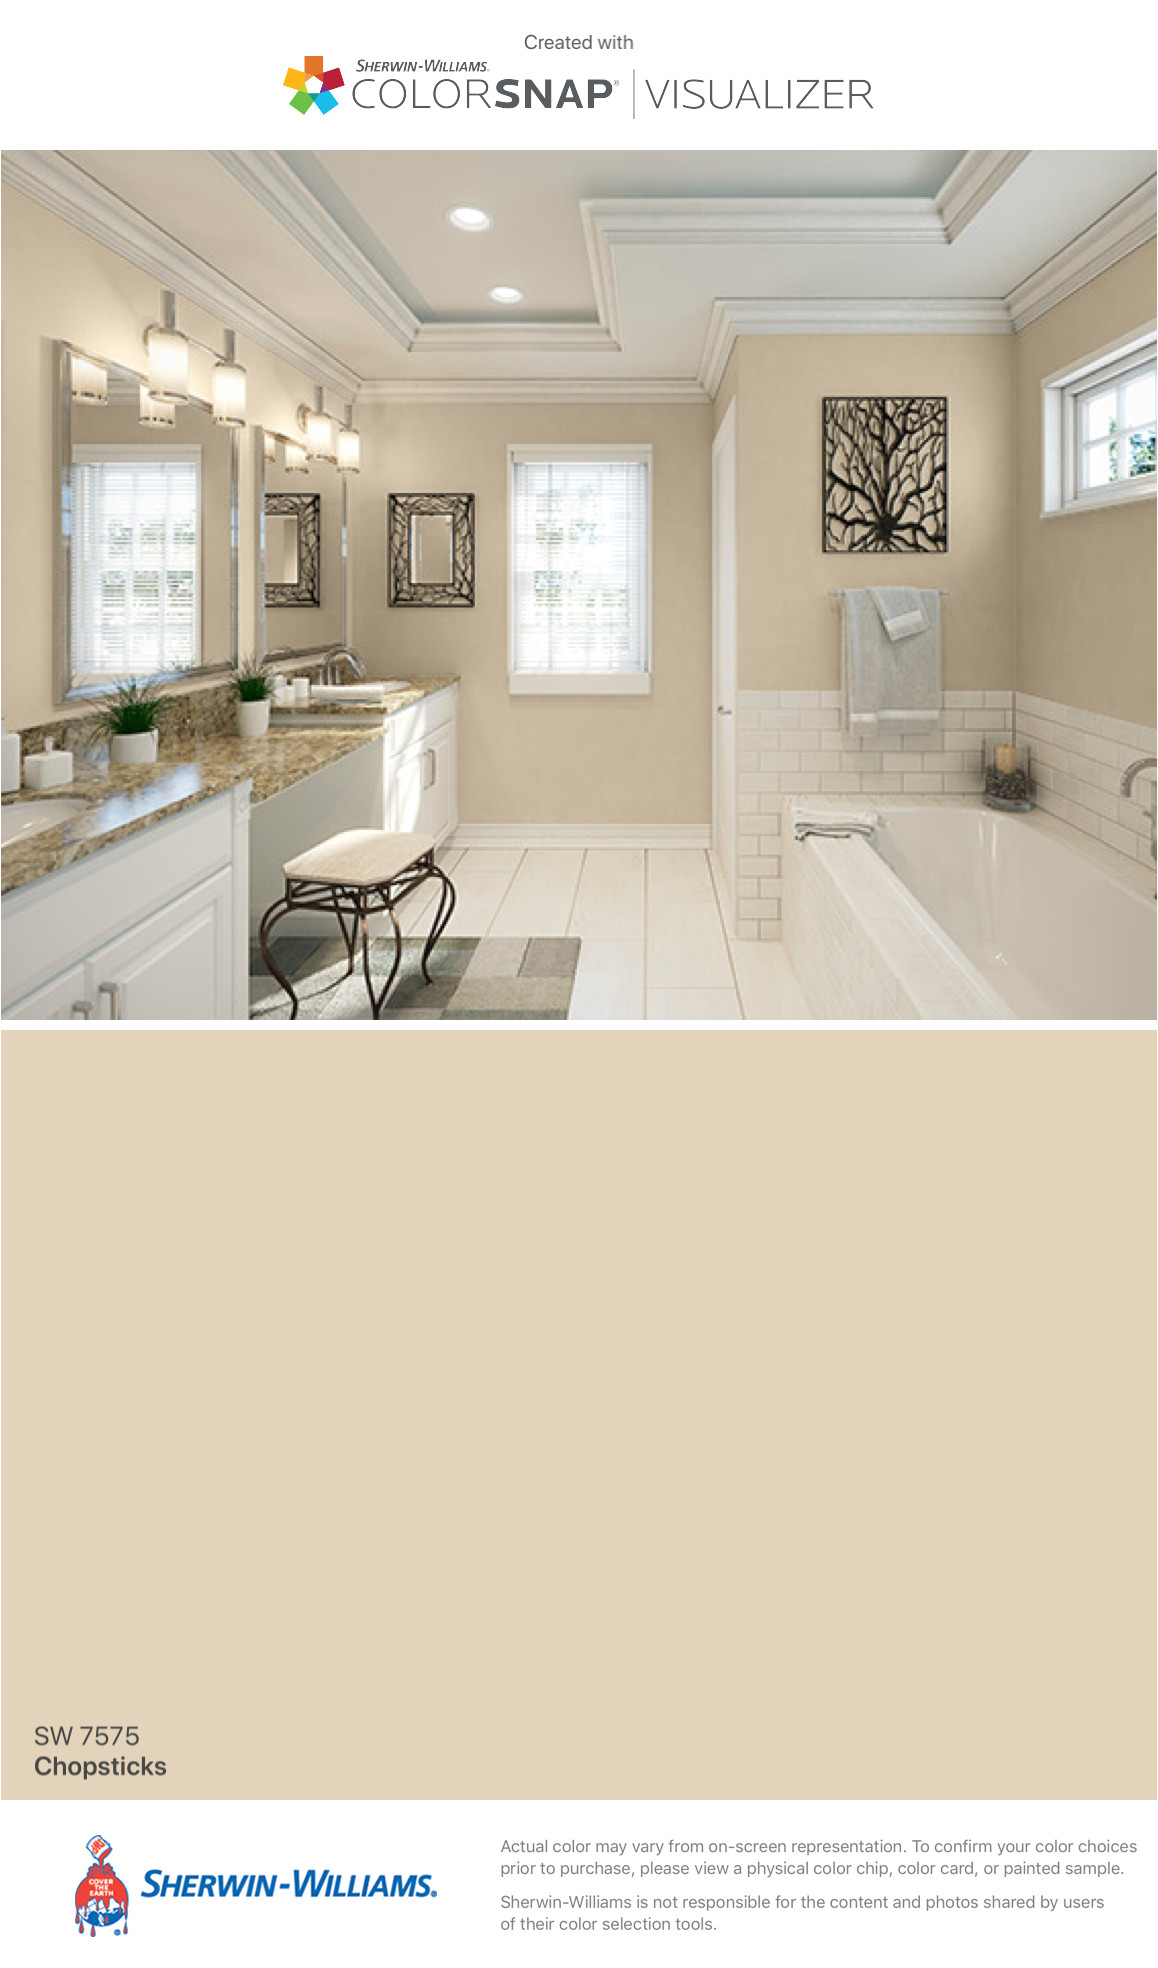 i found this color with colorsnapa visualizer for iphone by sherwin williams chopsticks sw 7575